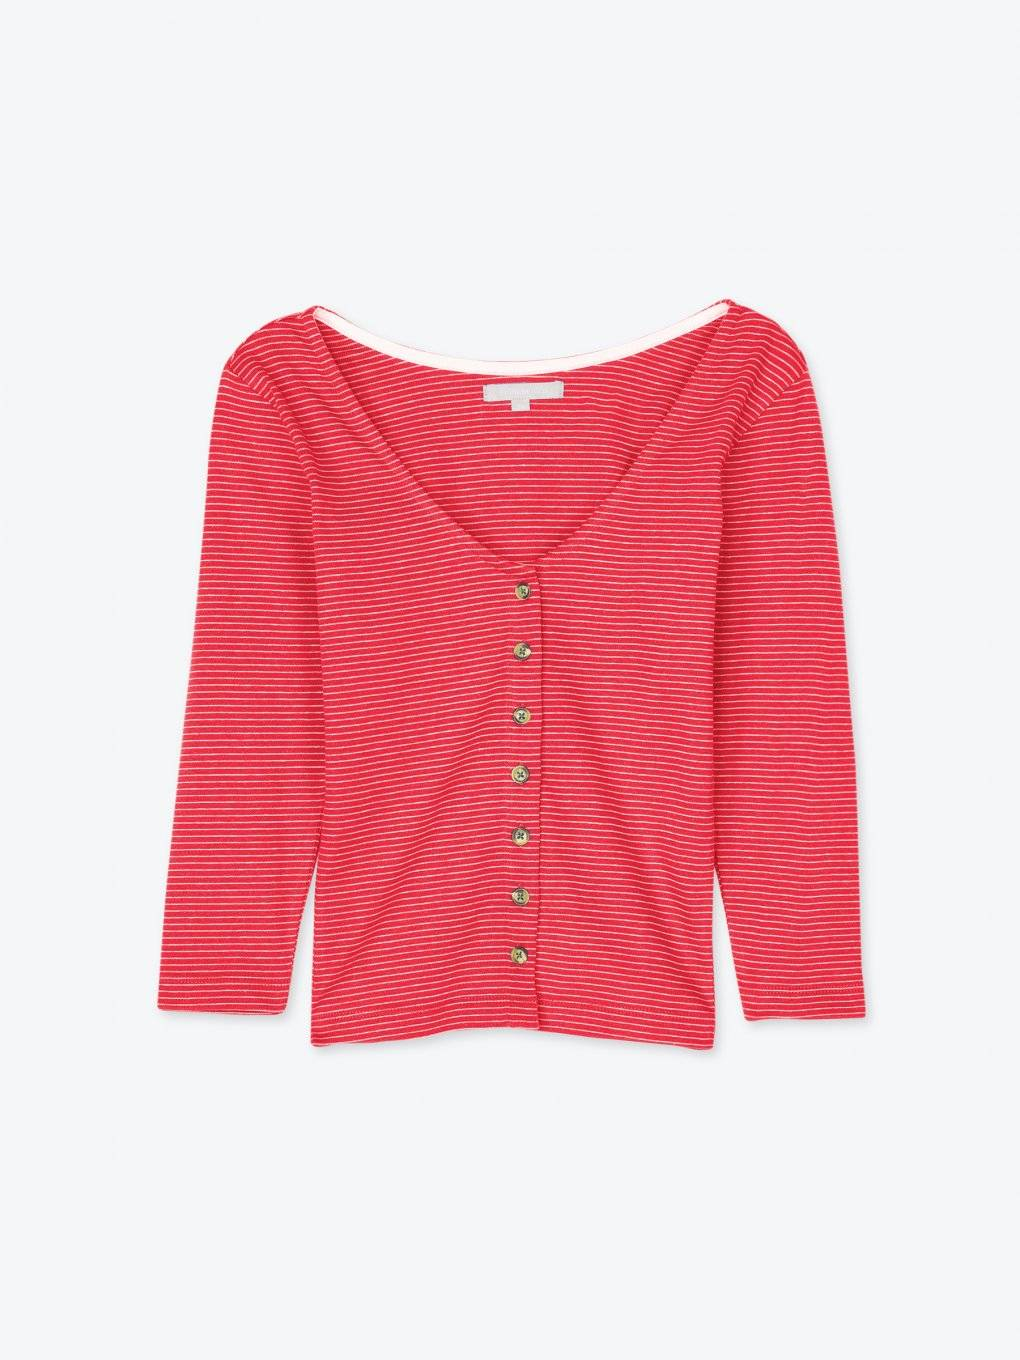 Striped top with front buttons